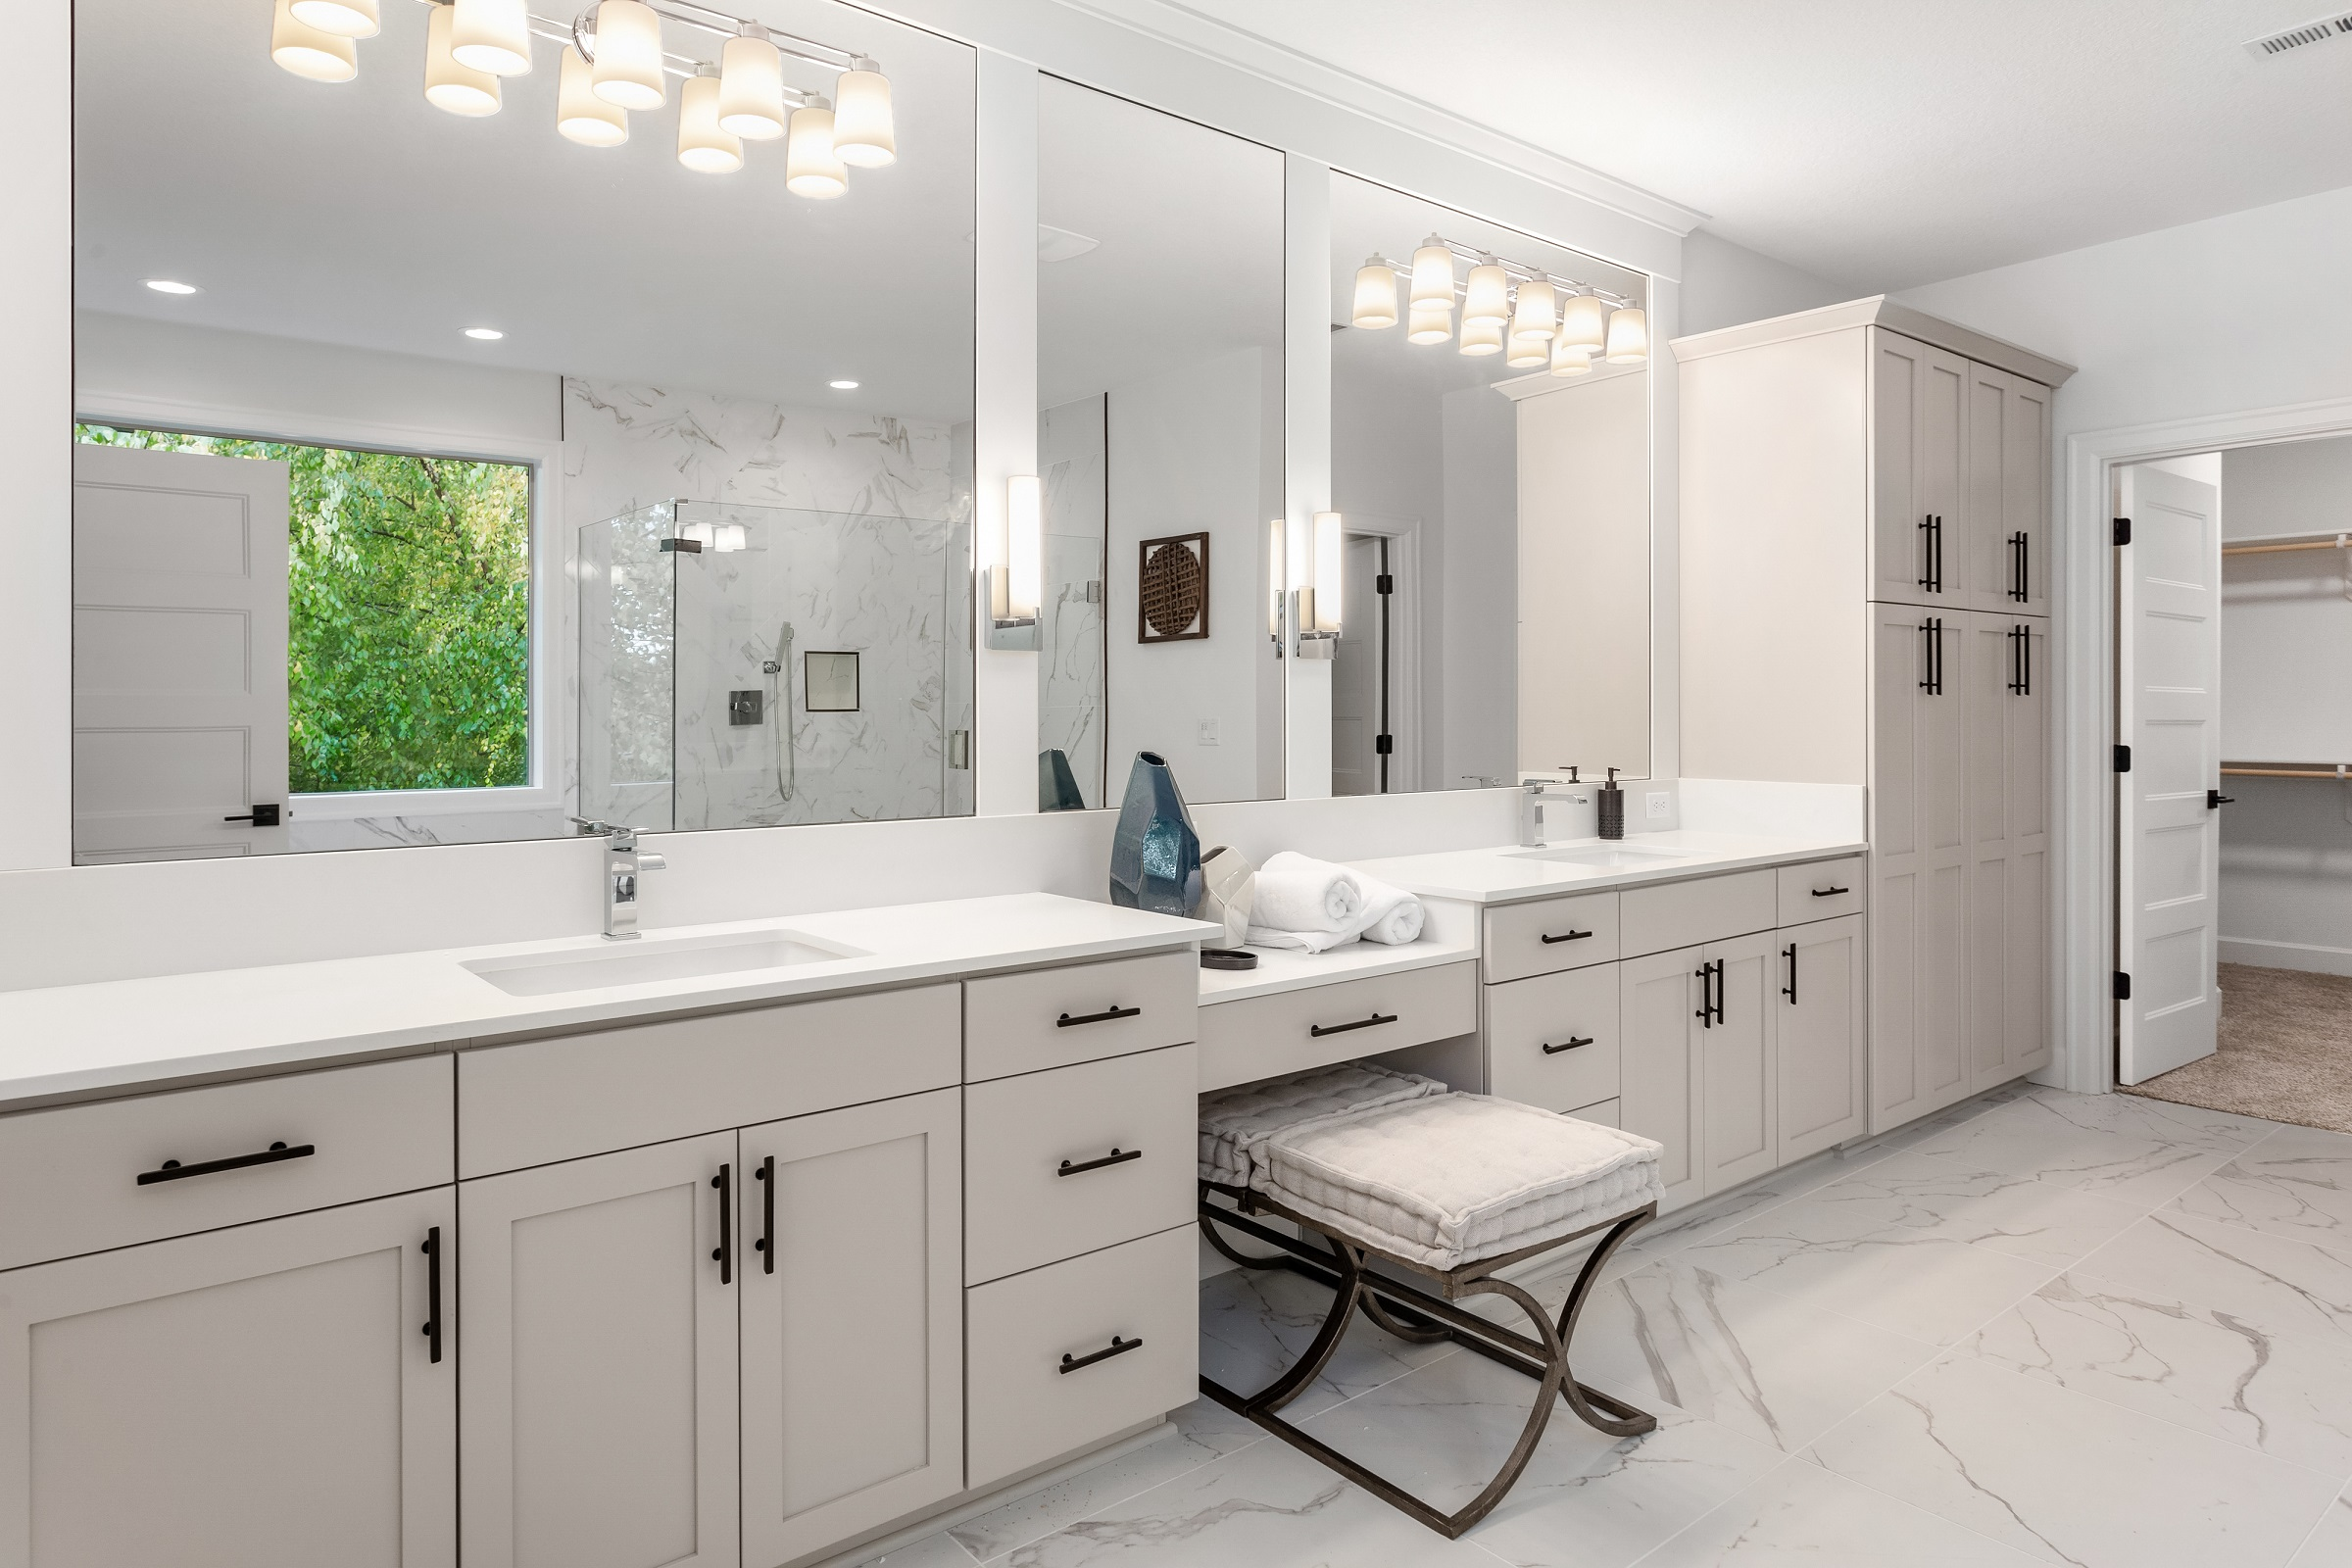 Bathroom in luxury home with double vanity, two mirrors, two sinks, and tile floor